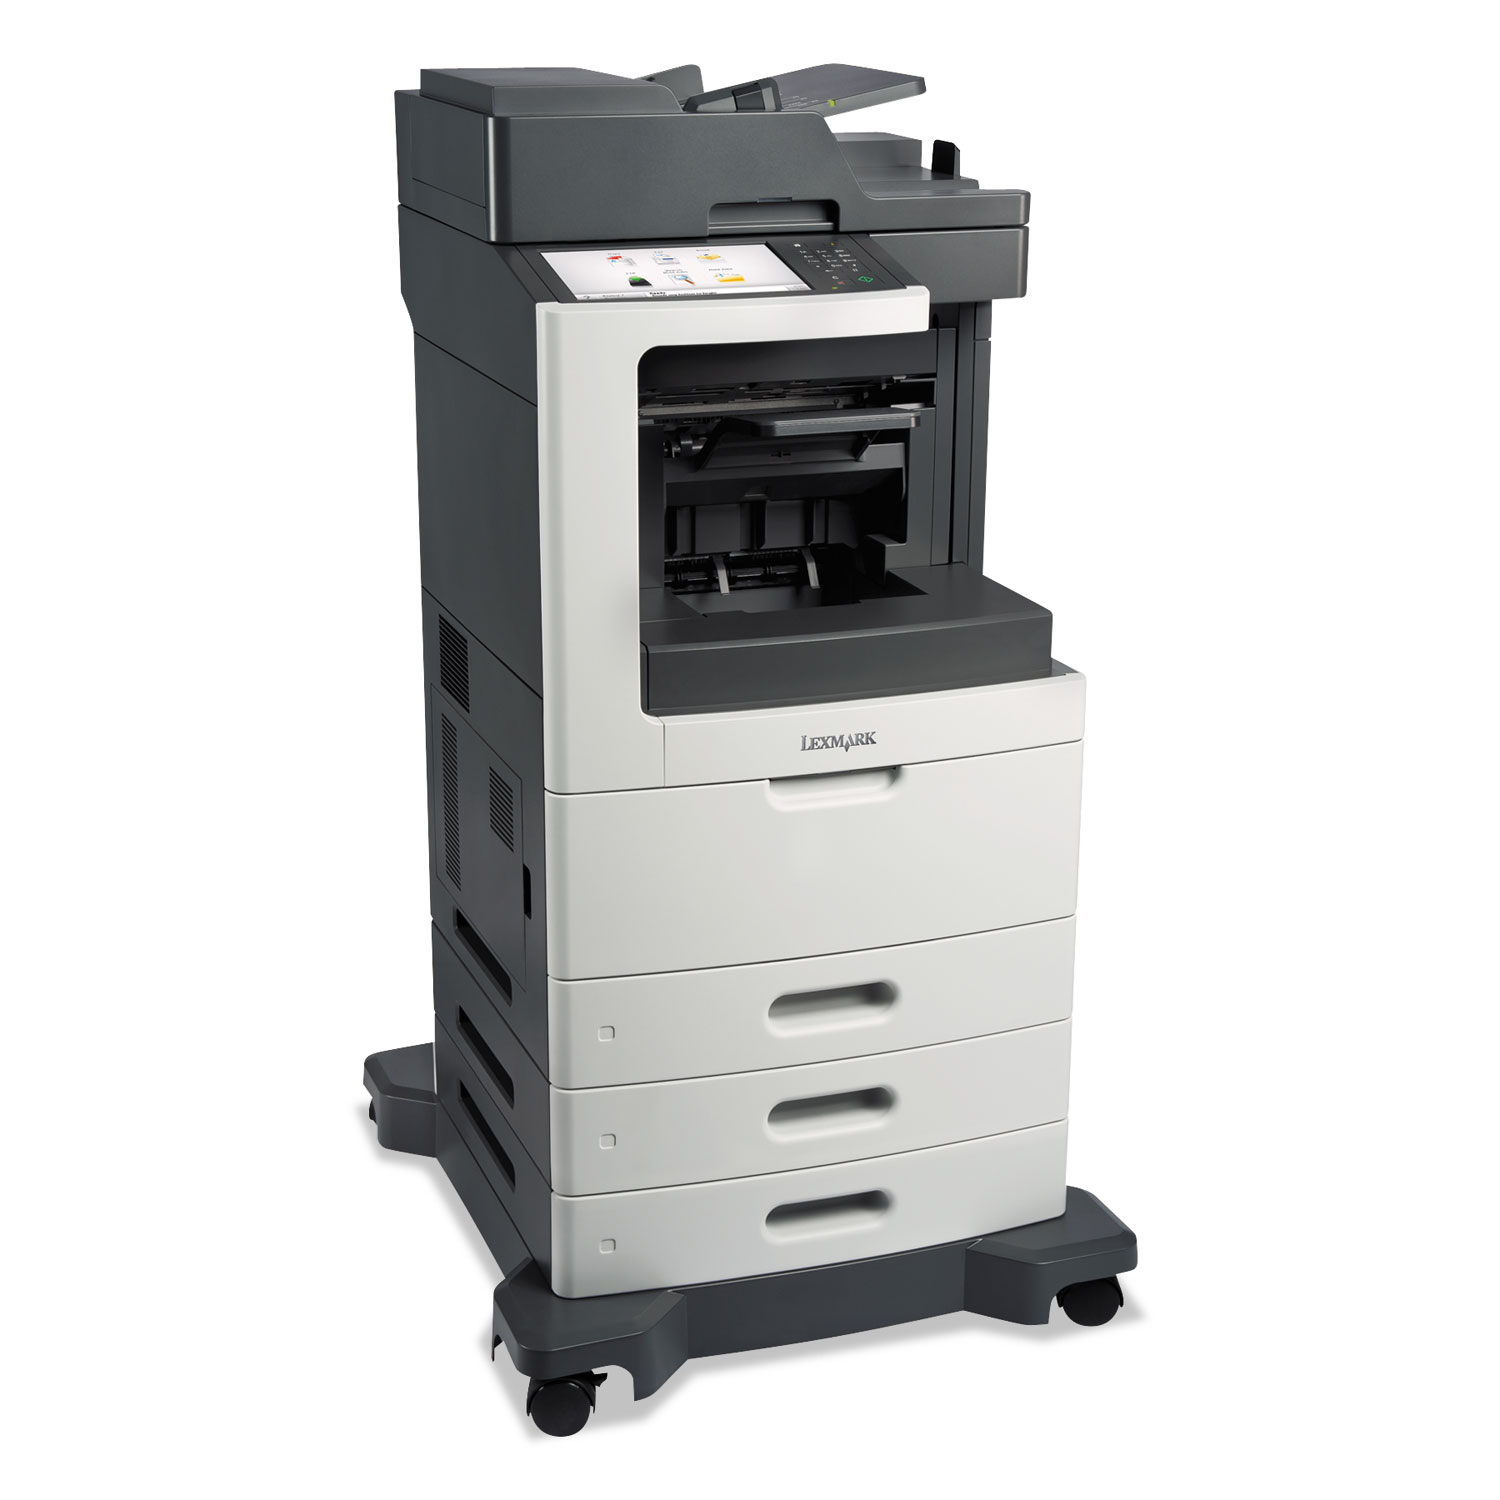 MX812dte Multifunction Laser Printer, Copy/Fax/Print/Scan